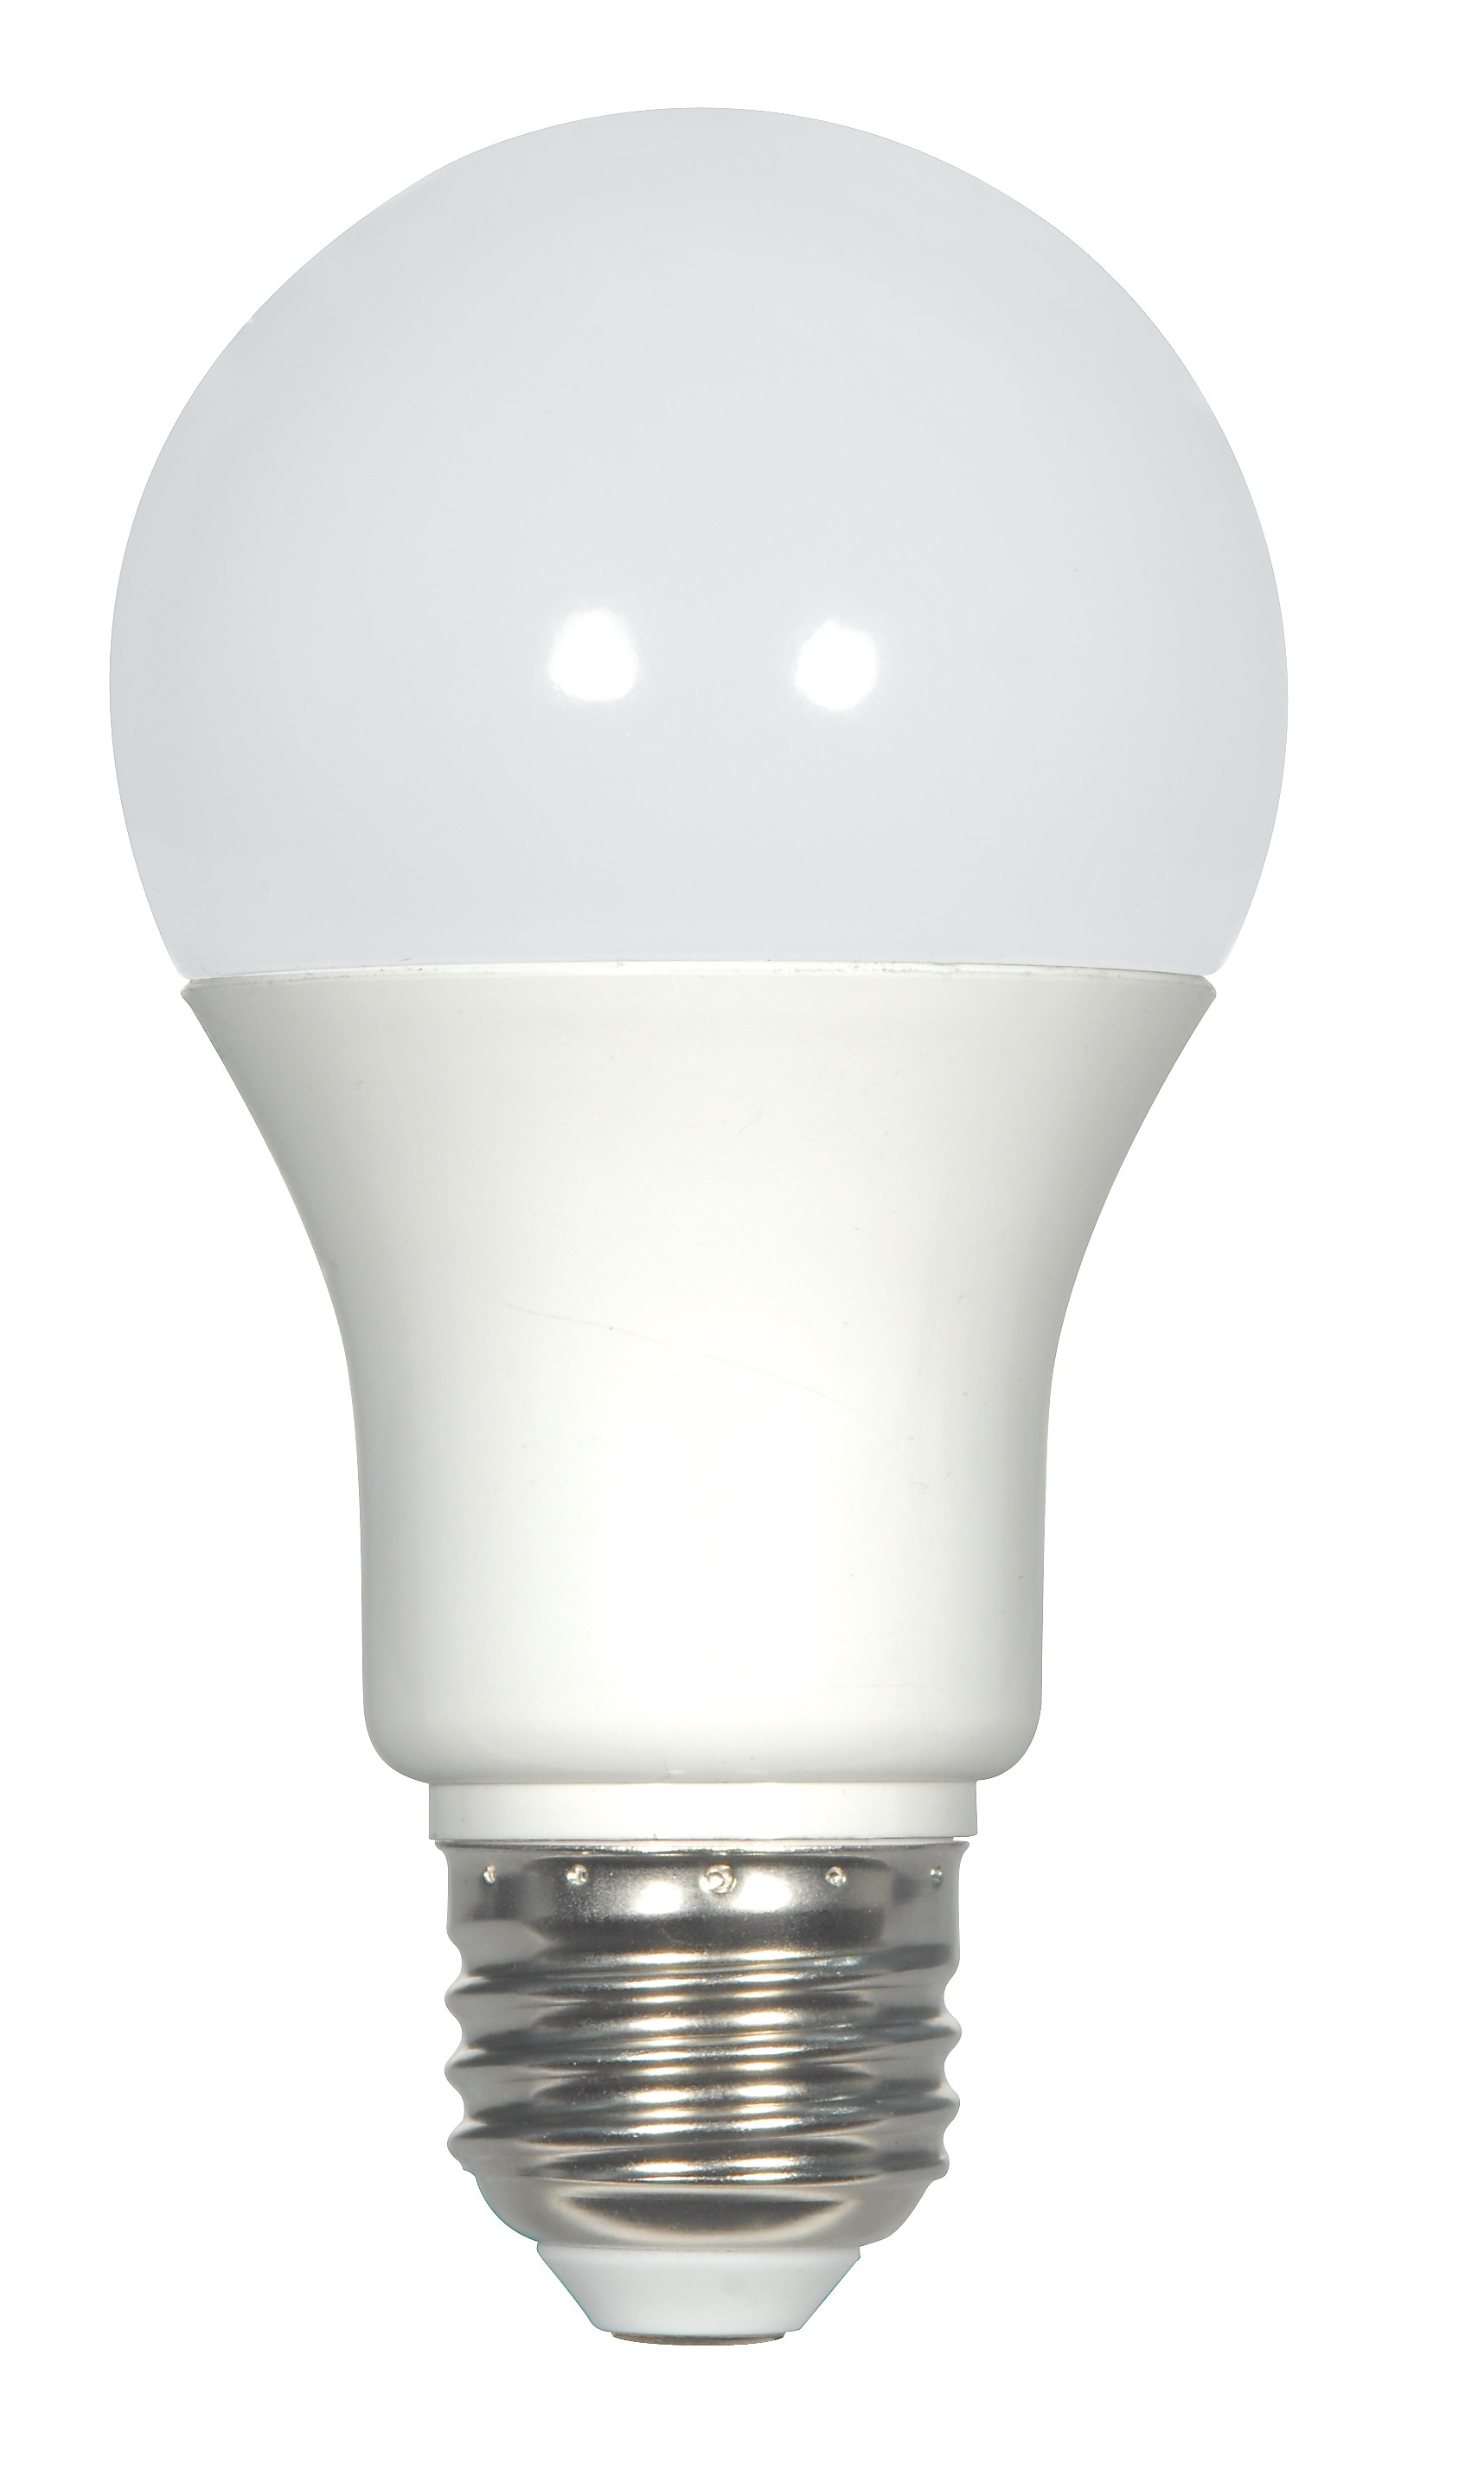 Satco S9213 KolourOne LED 7 6 Watt 120 Volt A19 Medium E26 Fros